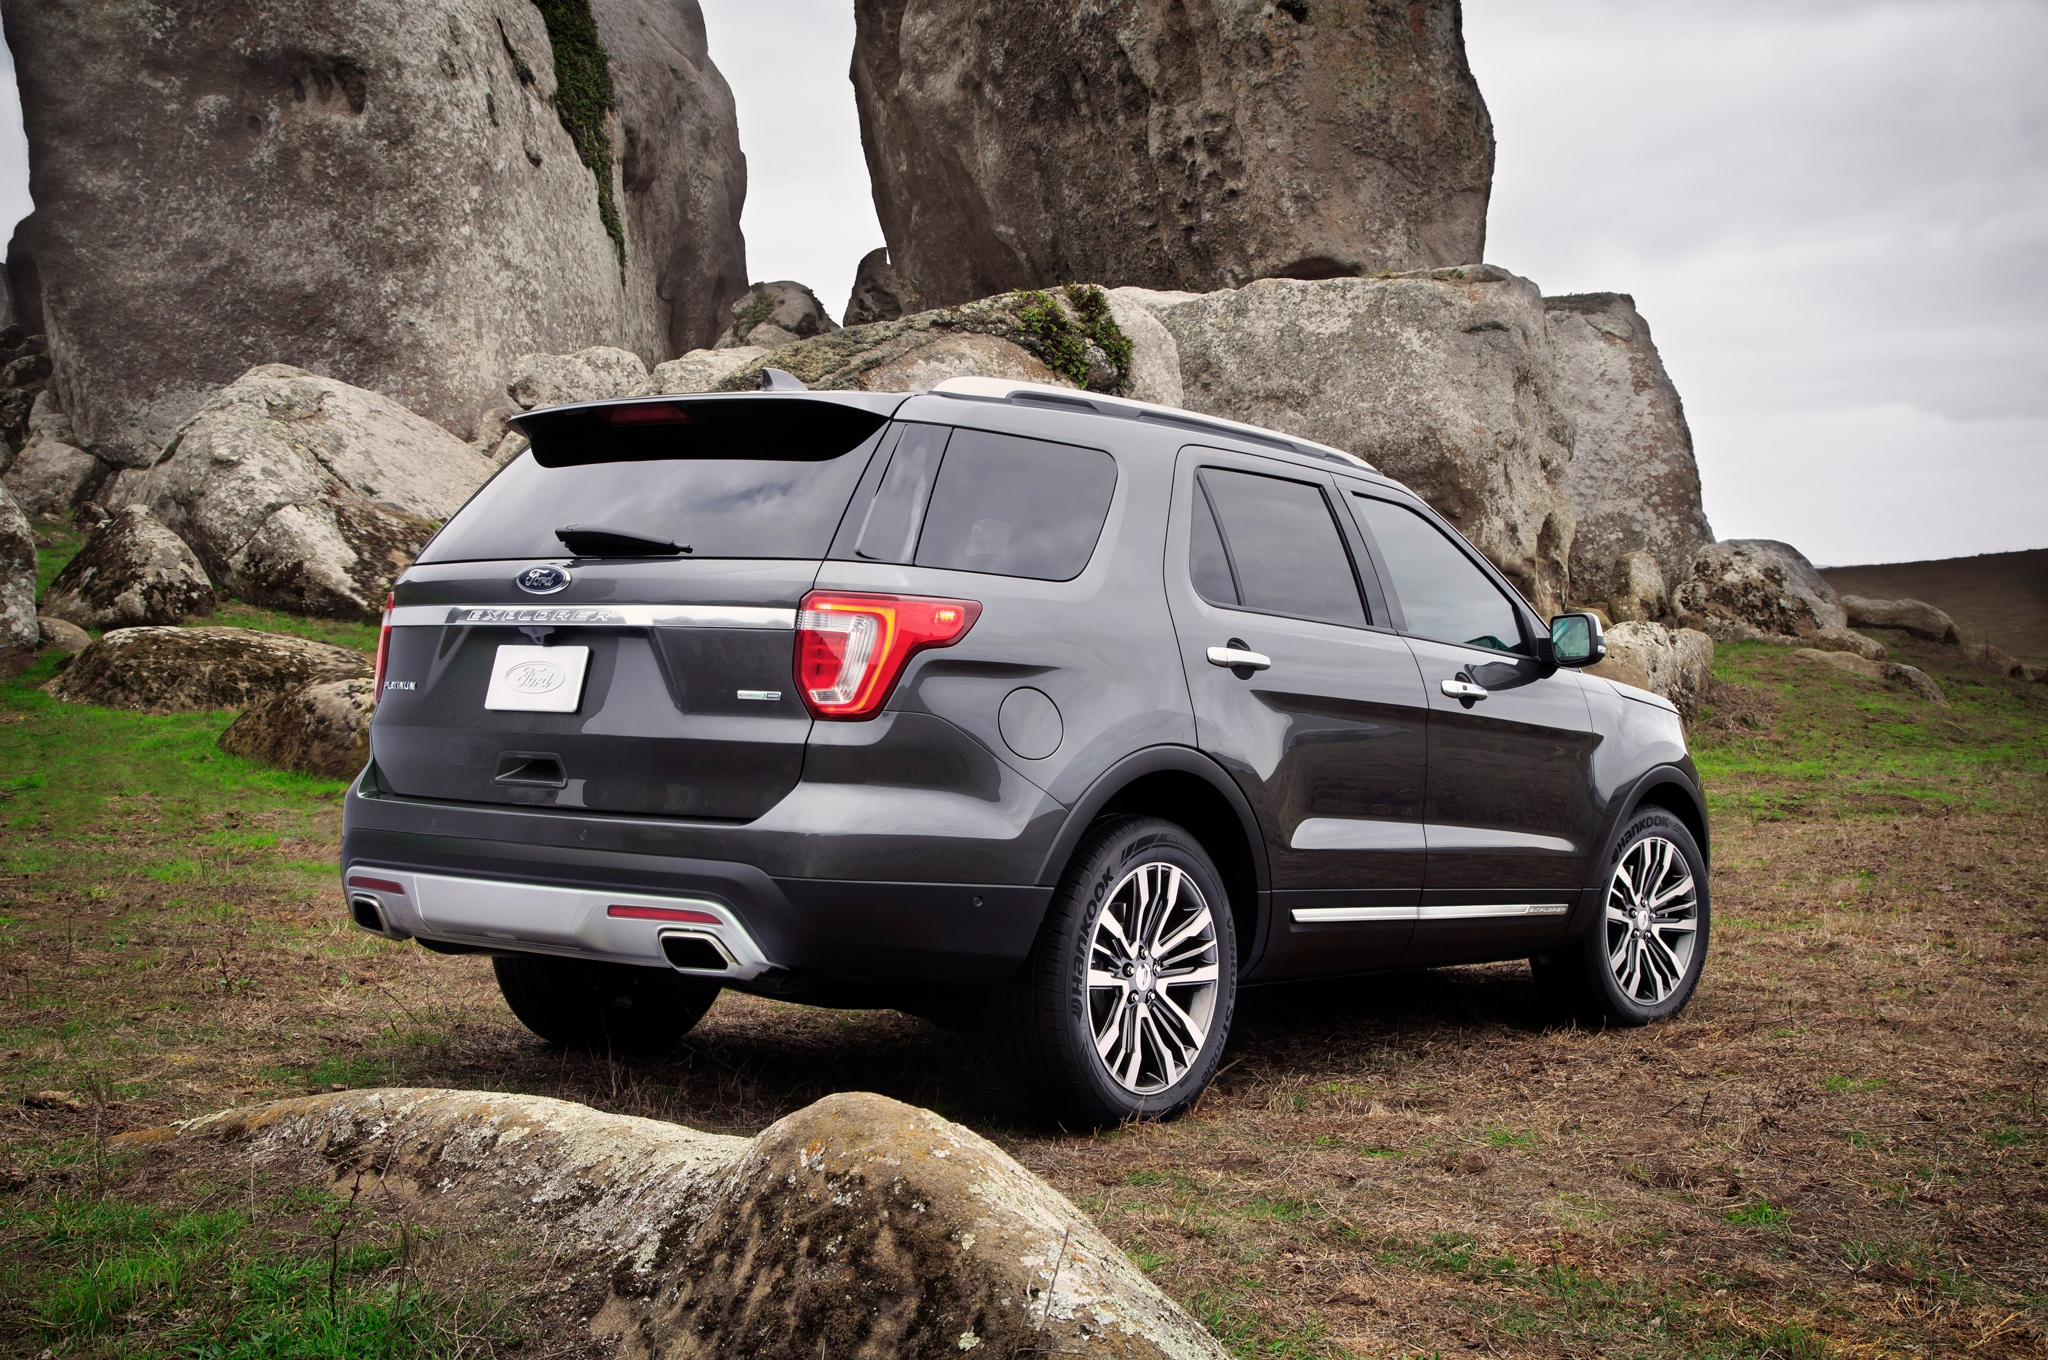 fordlorer price stunning cool wallpaper background pricing xlt ford explorer invoice price